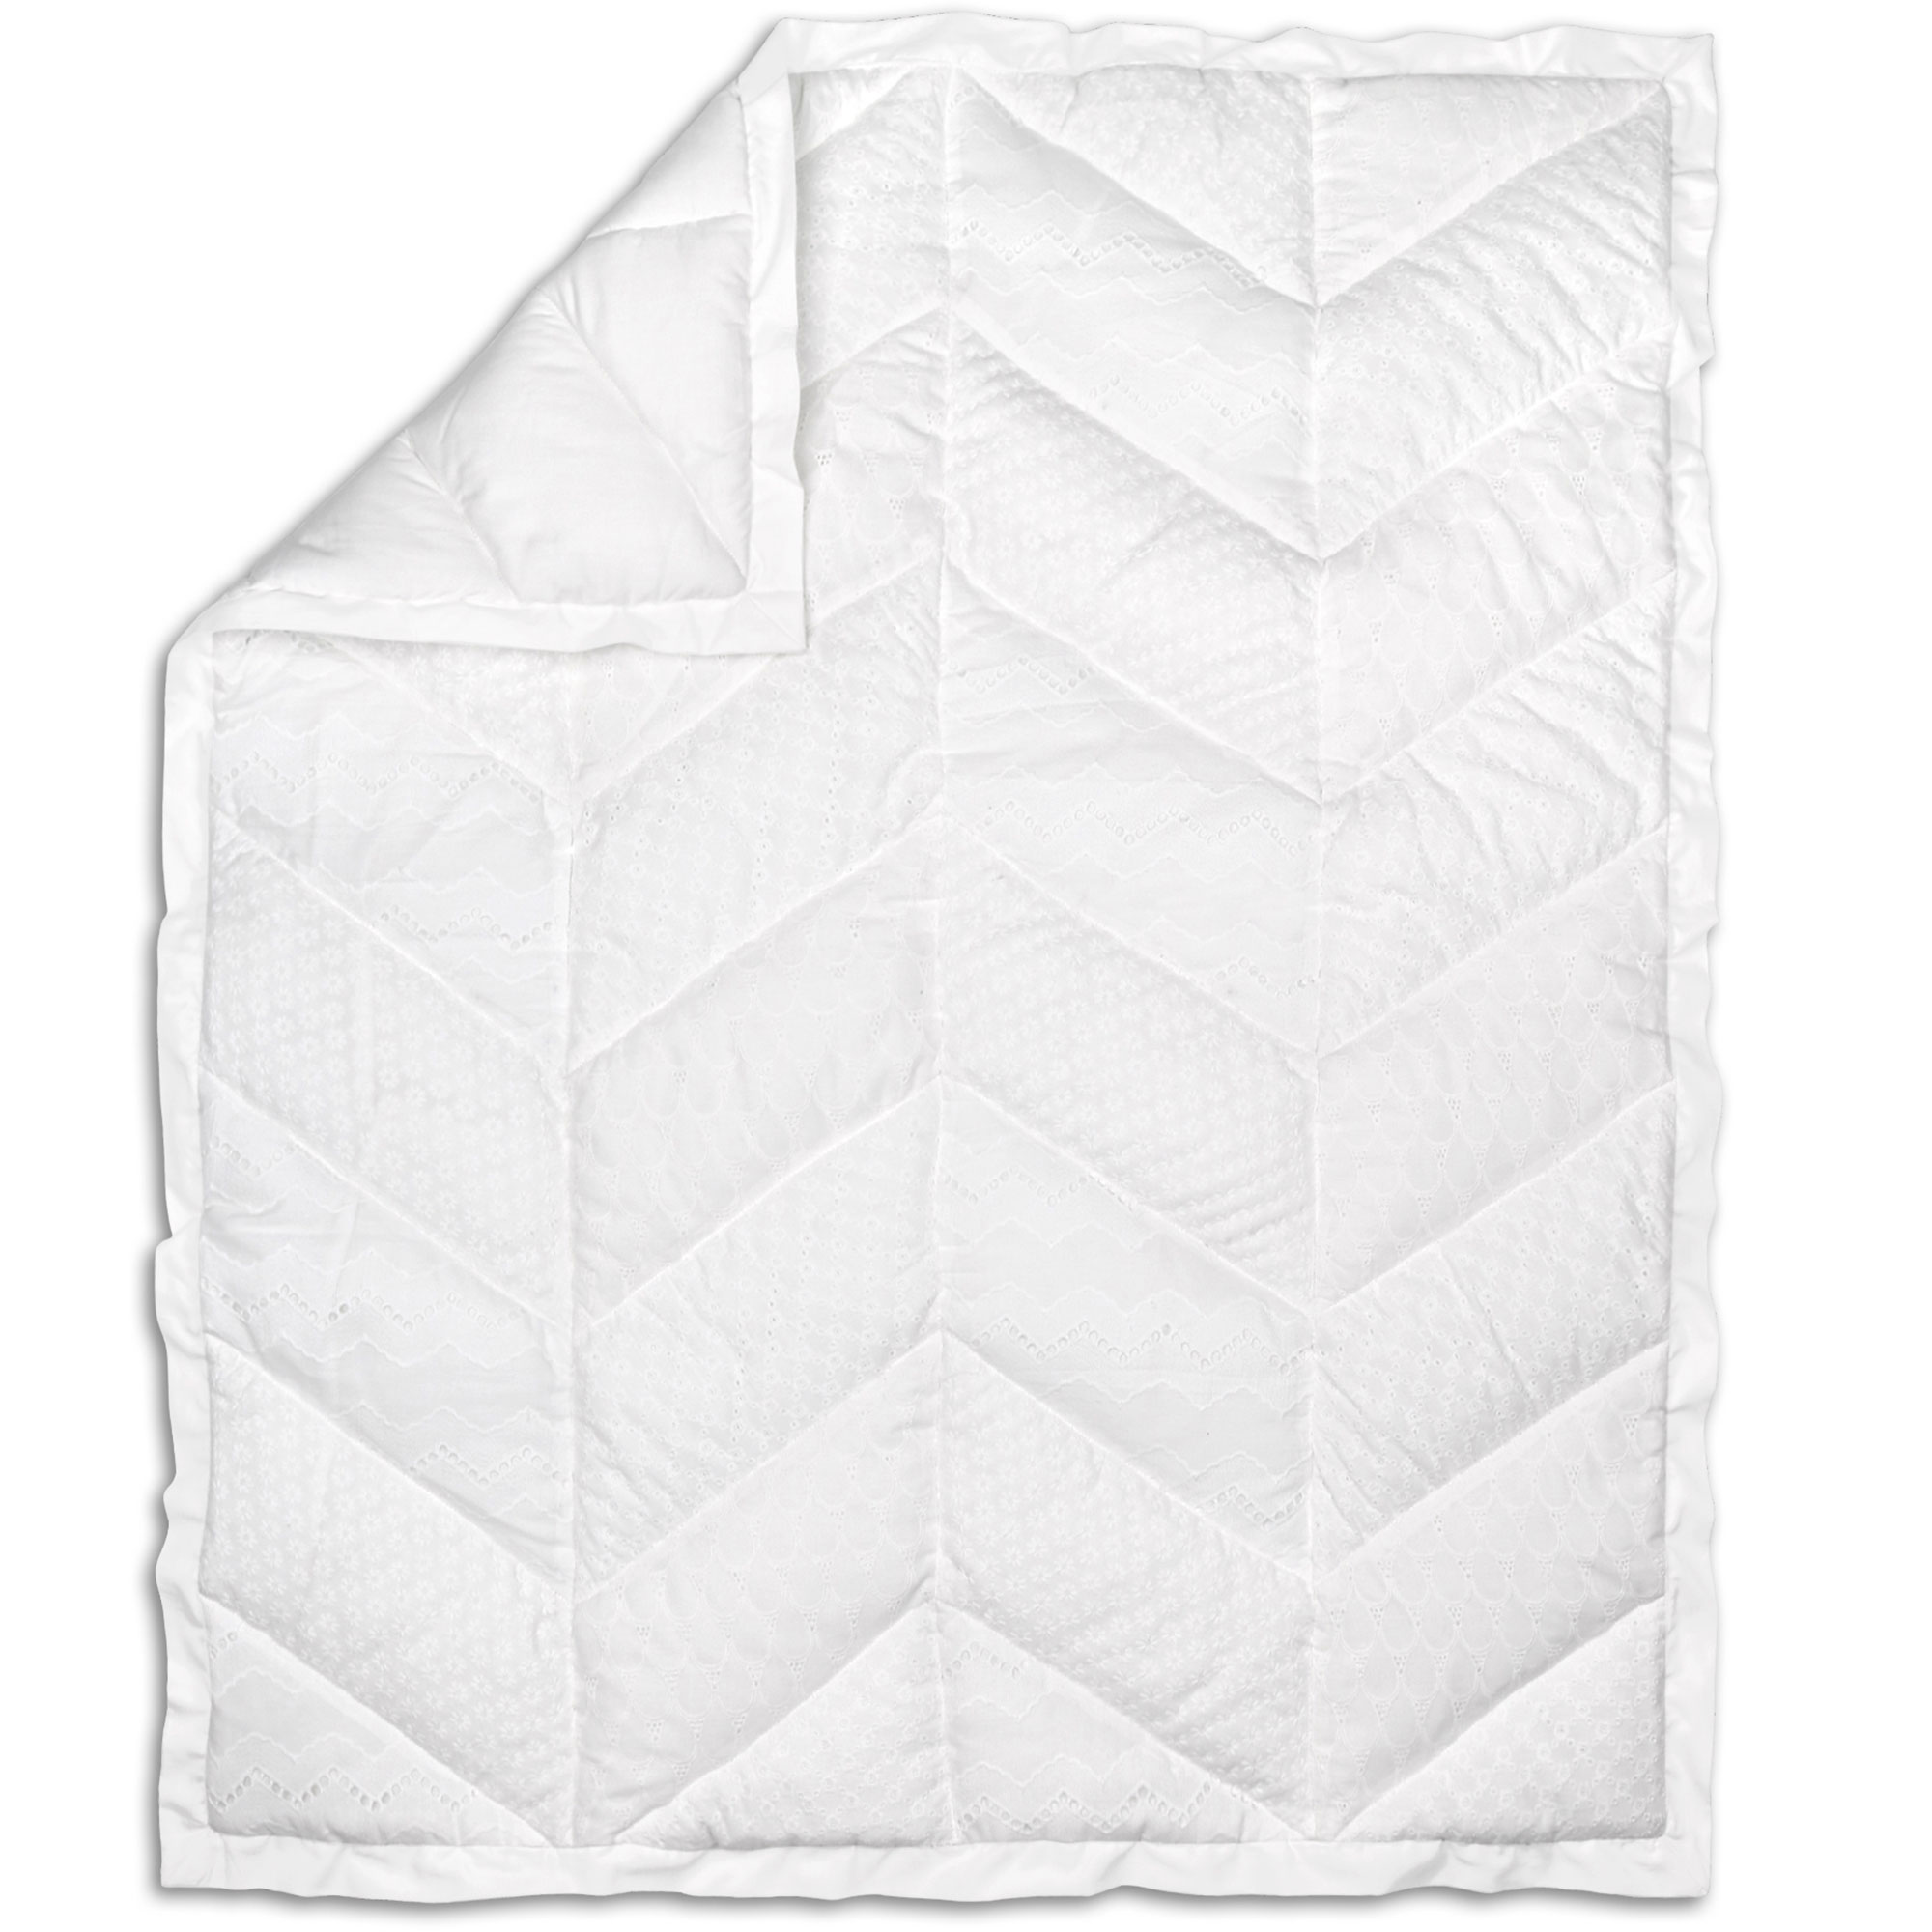 Taylor White Eyelet Baby Girl Crib Quilt by The Peanut Shell by The Peanut Shell